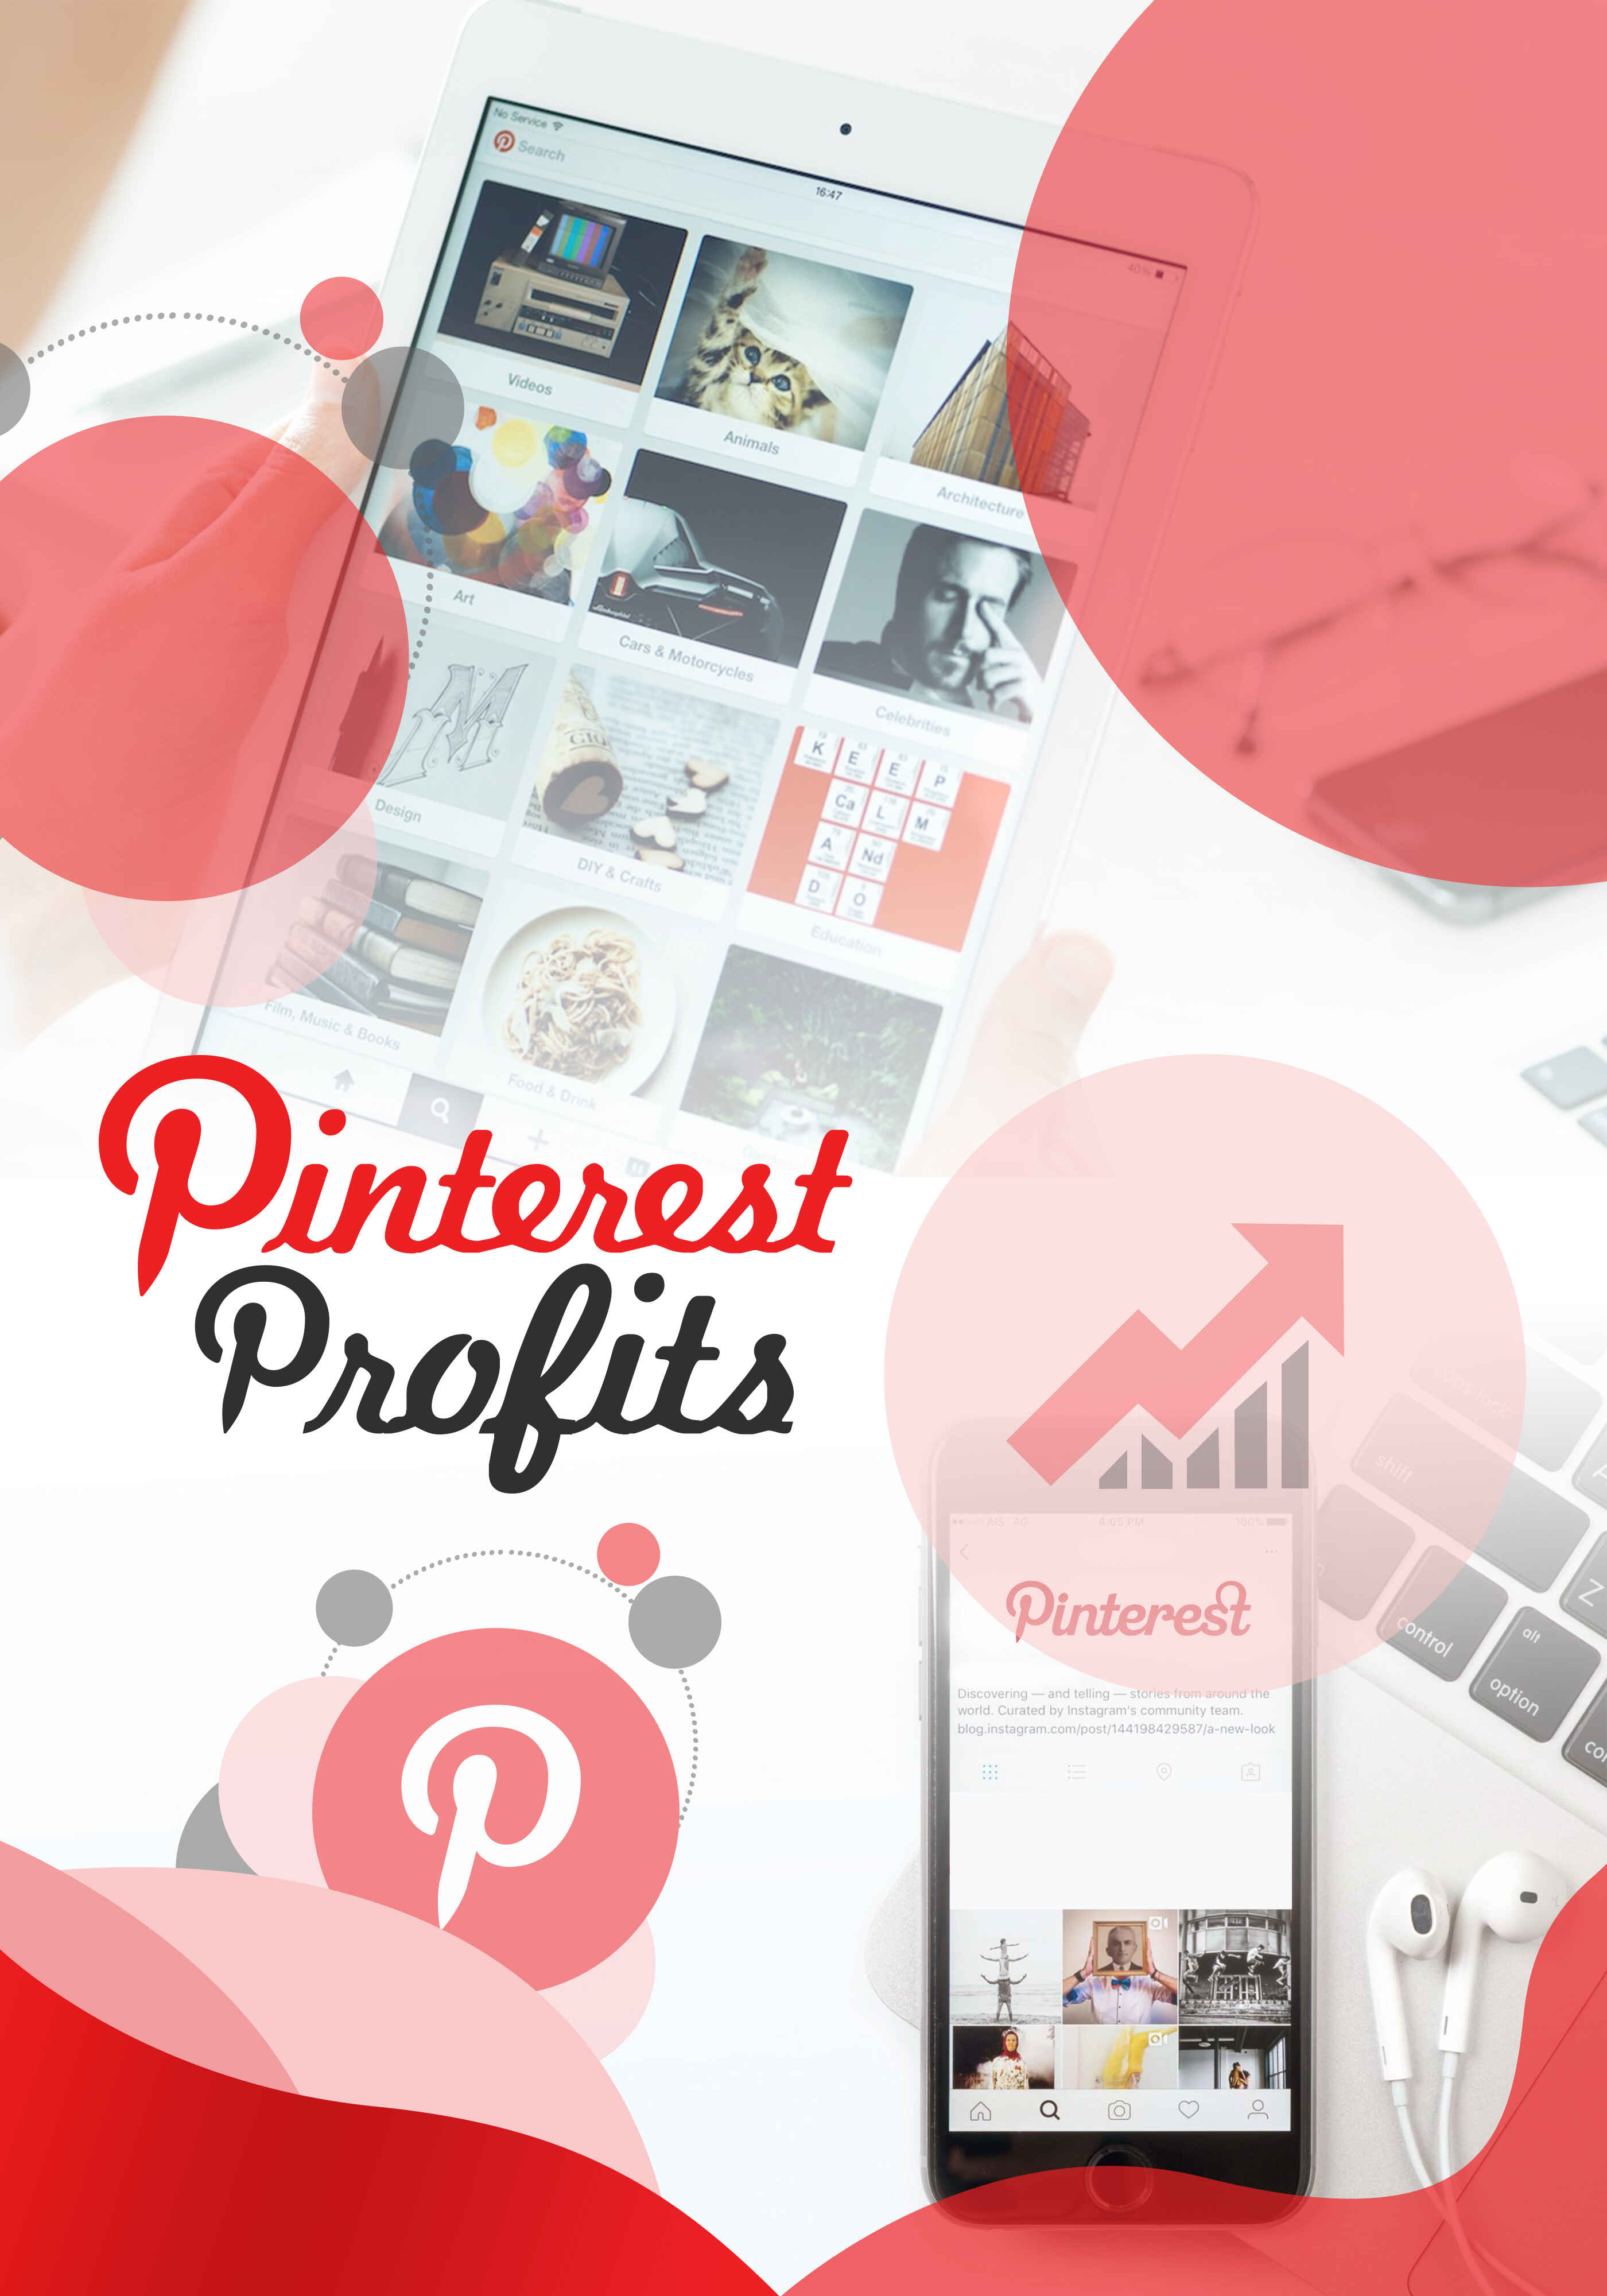 Pinterest Profits Ebook's Ebook Image